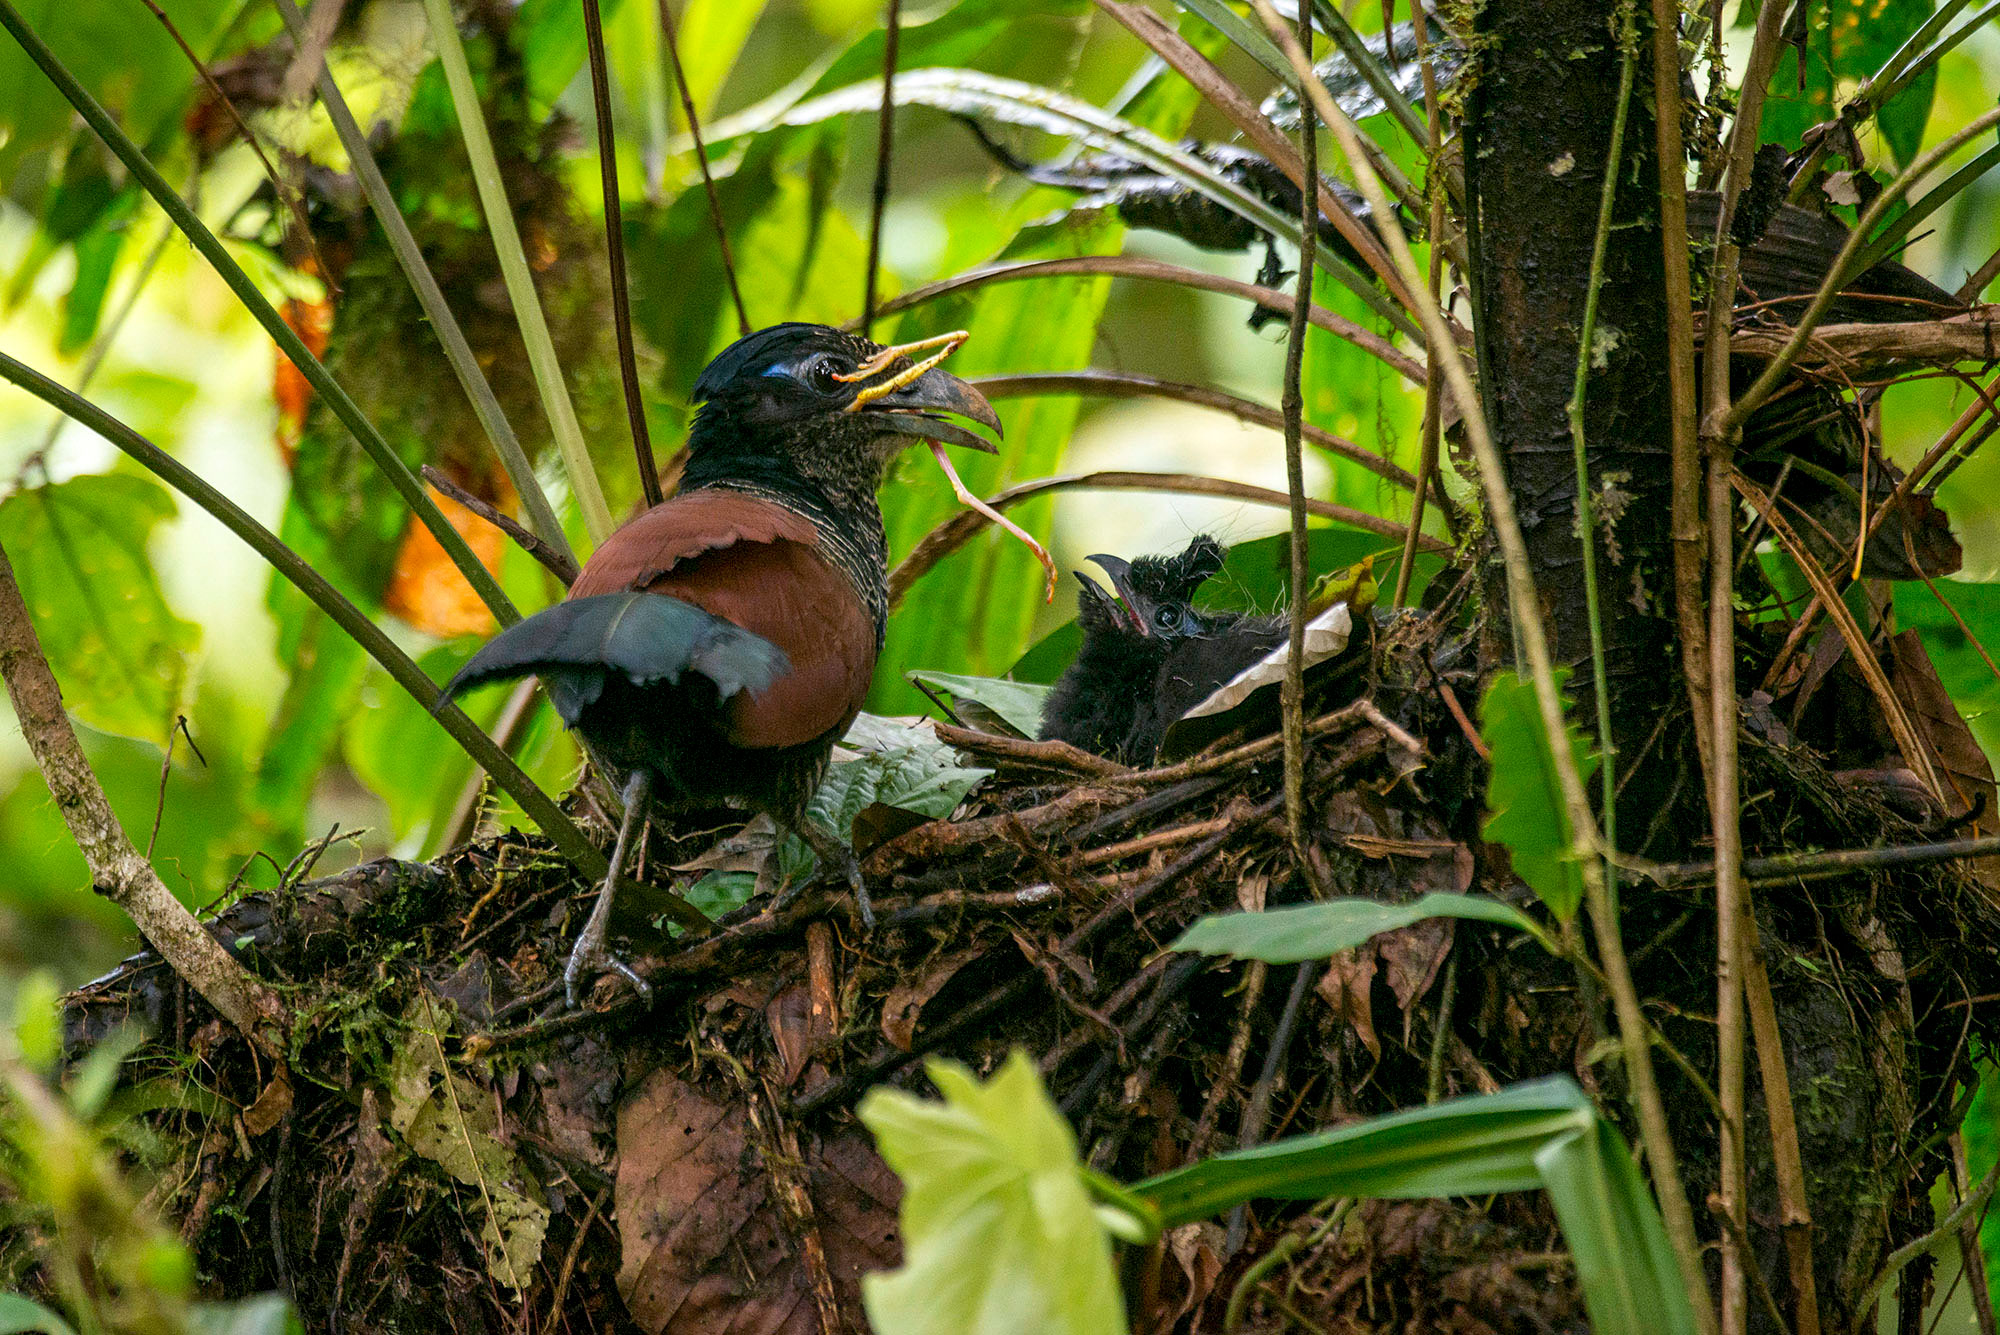 Banded Ground-Cuckoo at nest feeding a tree frog to chick, photographed in 2014. Murray Cooper